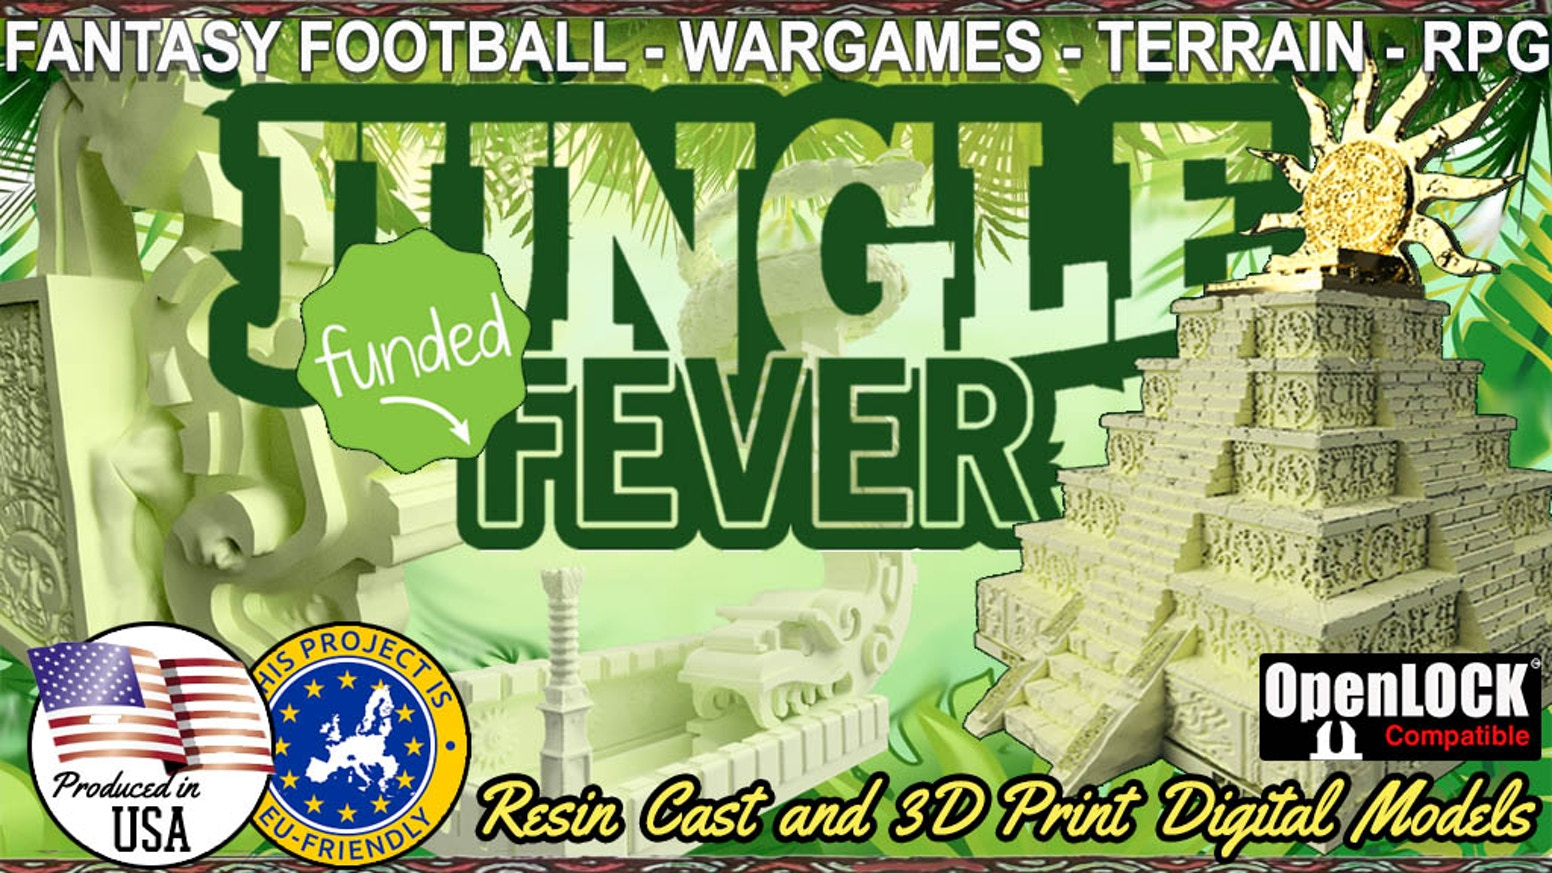 Jungle Fever! Resin cast models and 3D printing digital OpenLOCK STL files. For wargames, RPG, terrain, fantasy football, dice tower.